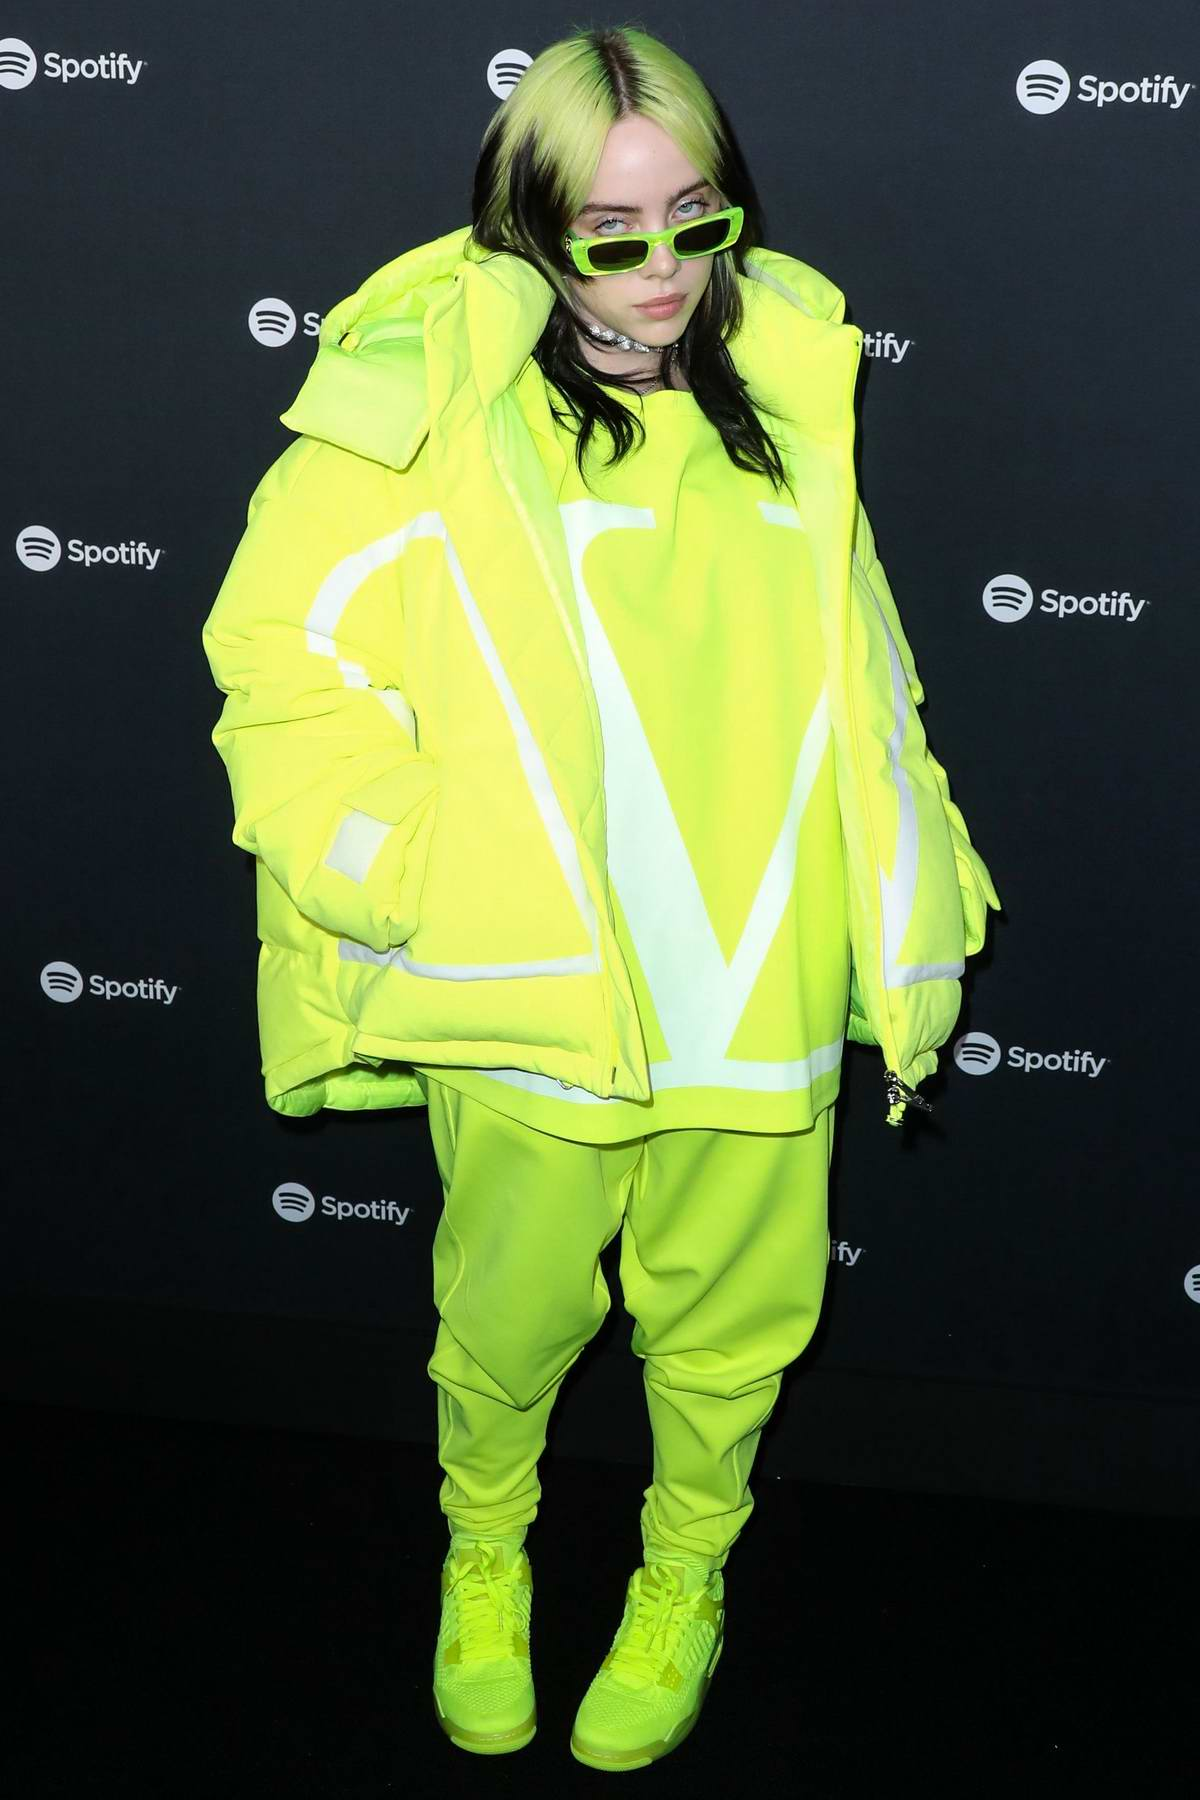 Billie Eilish attends the Spotify 'Best New Artist' Party 2020 in Los Angeles